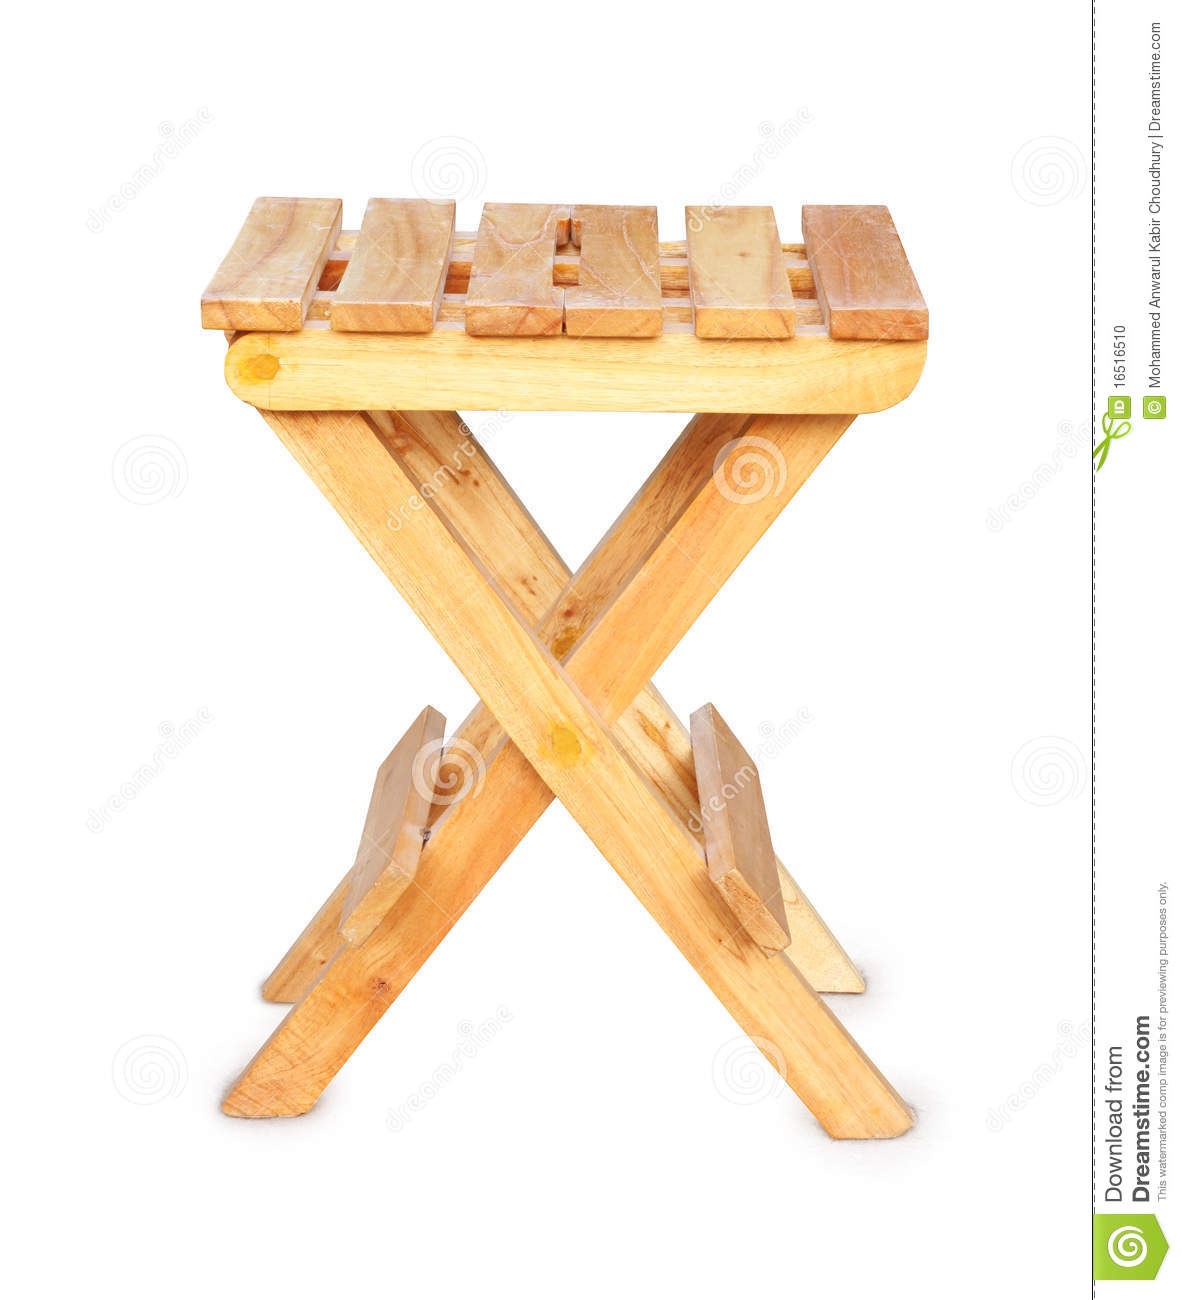 Wood Folding Stool Plans Image Mag : wooden folding stool 16516510 from imagemag.ru size 1182 x 1300 jpeg 100kB